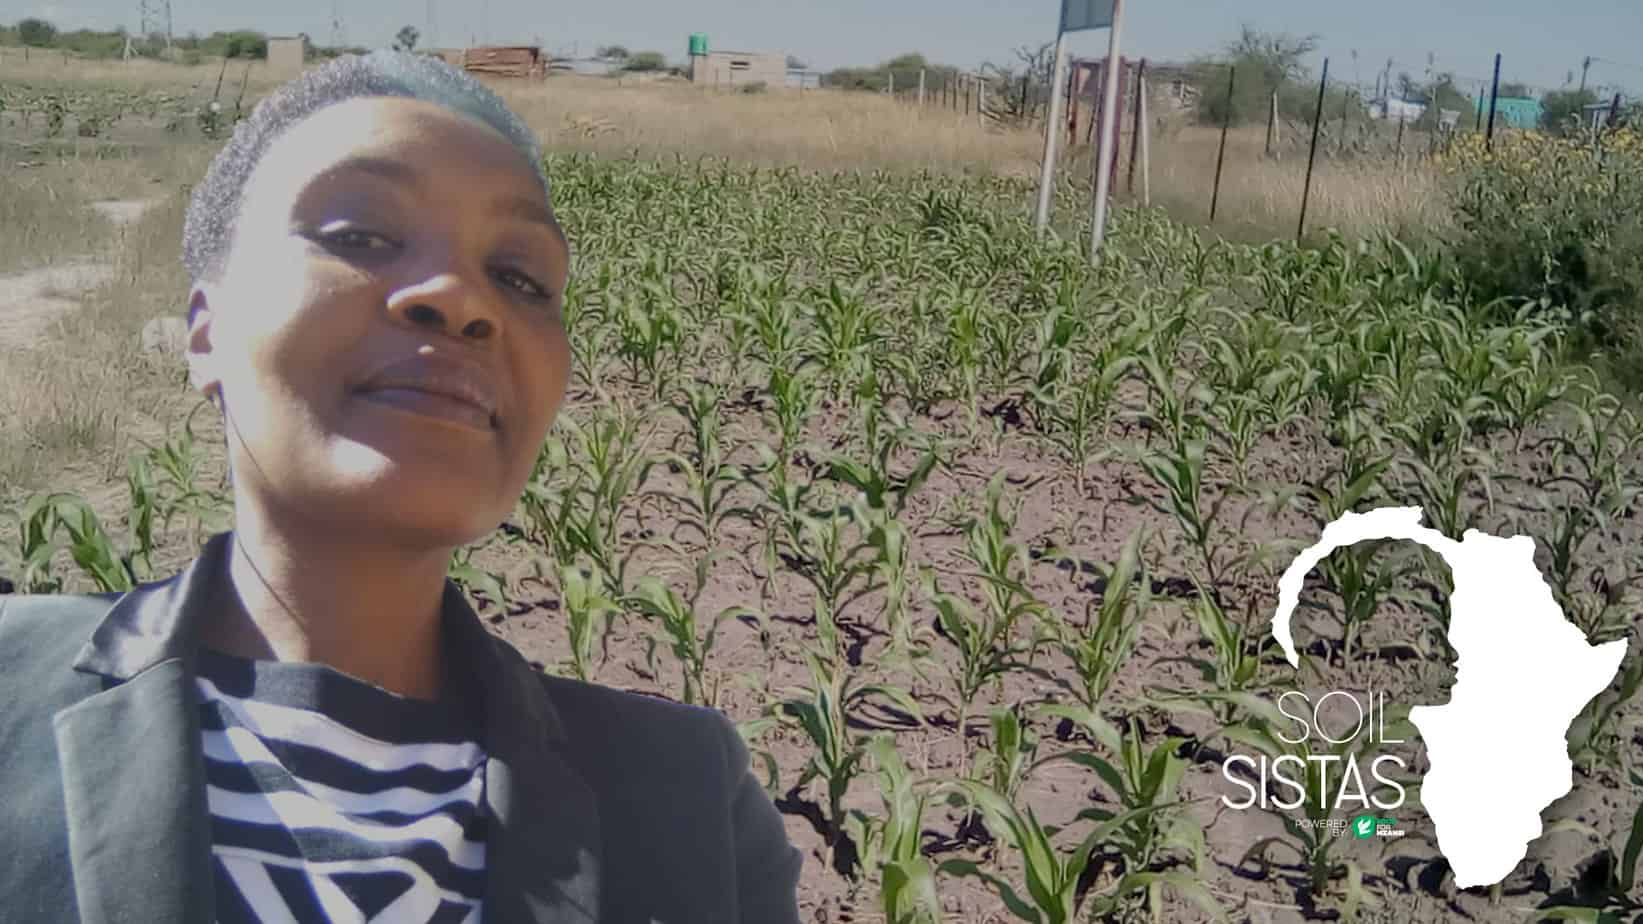 Nomathamsanqa Dyonase believes the agriculture sector is too male-dominated and is missing the special ingredients of a woman's touch to make it whole. Photo: Food For Mzansi/Supplied